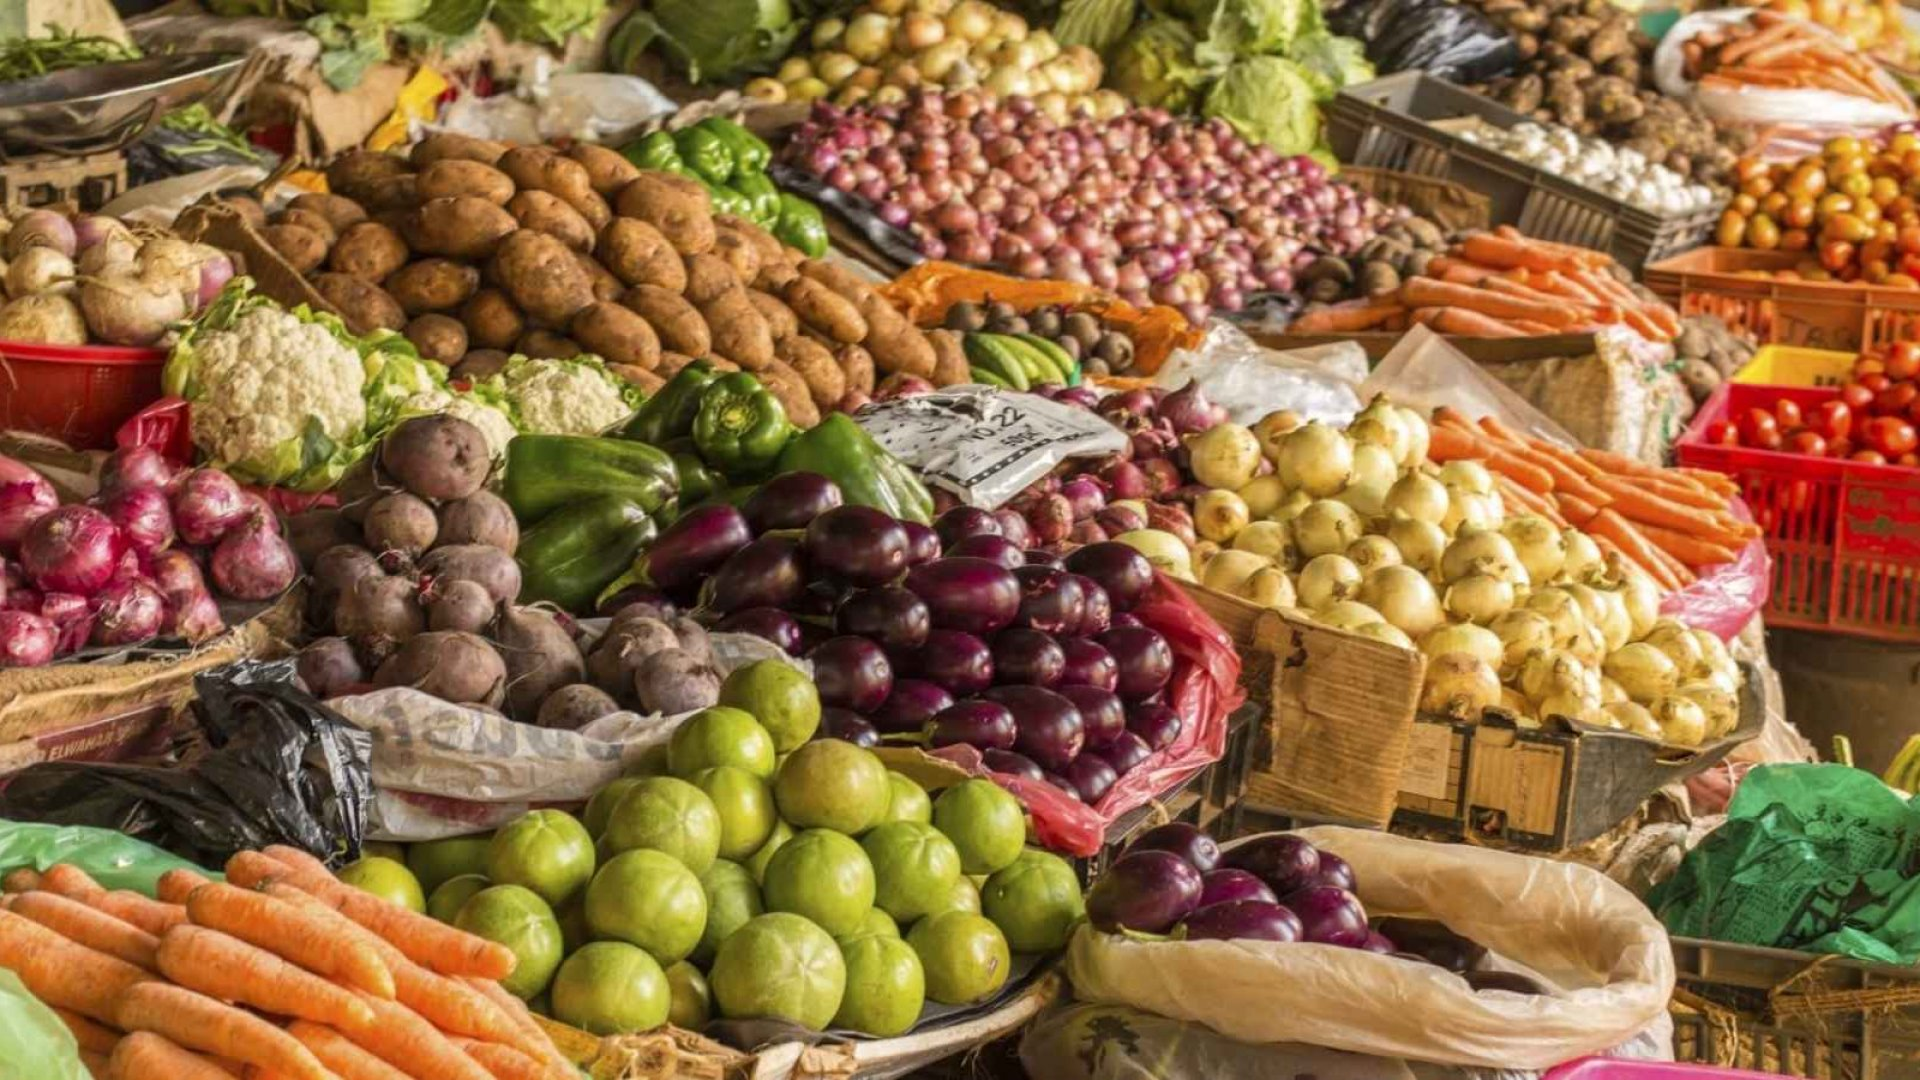 3 Big Reasons Why Science Says Eat More Fruit and Veggies